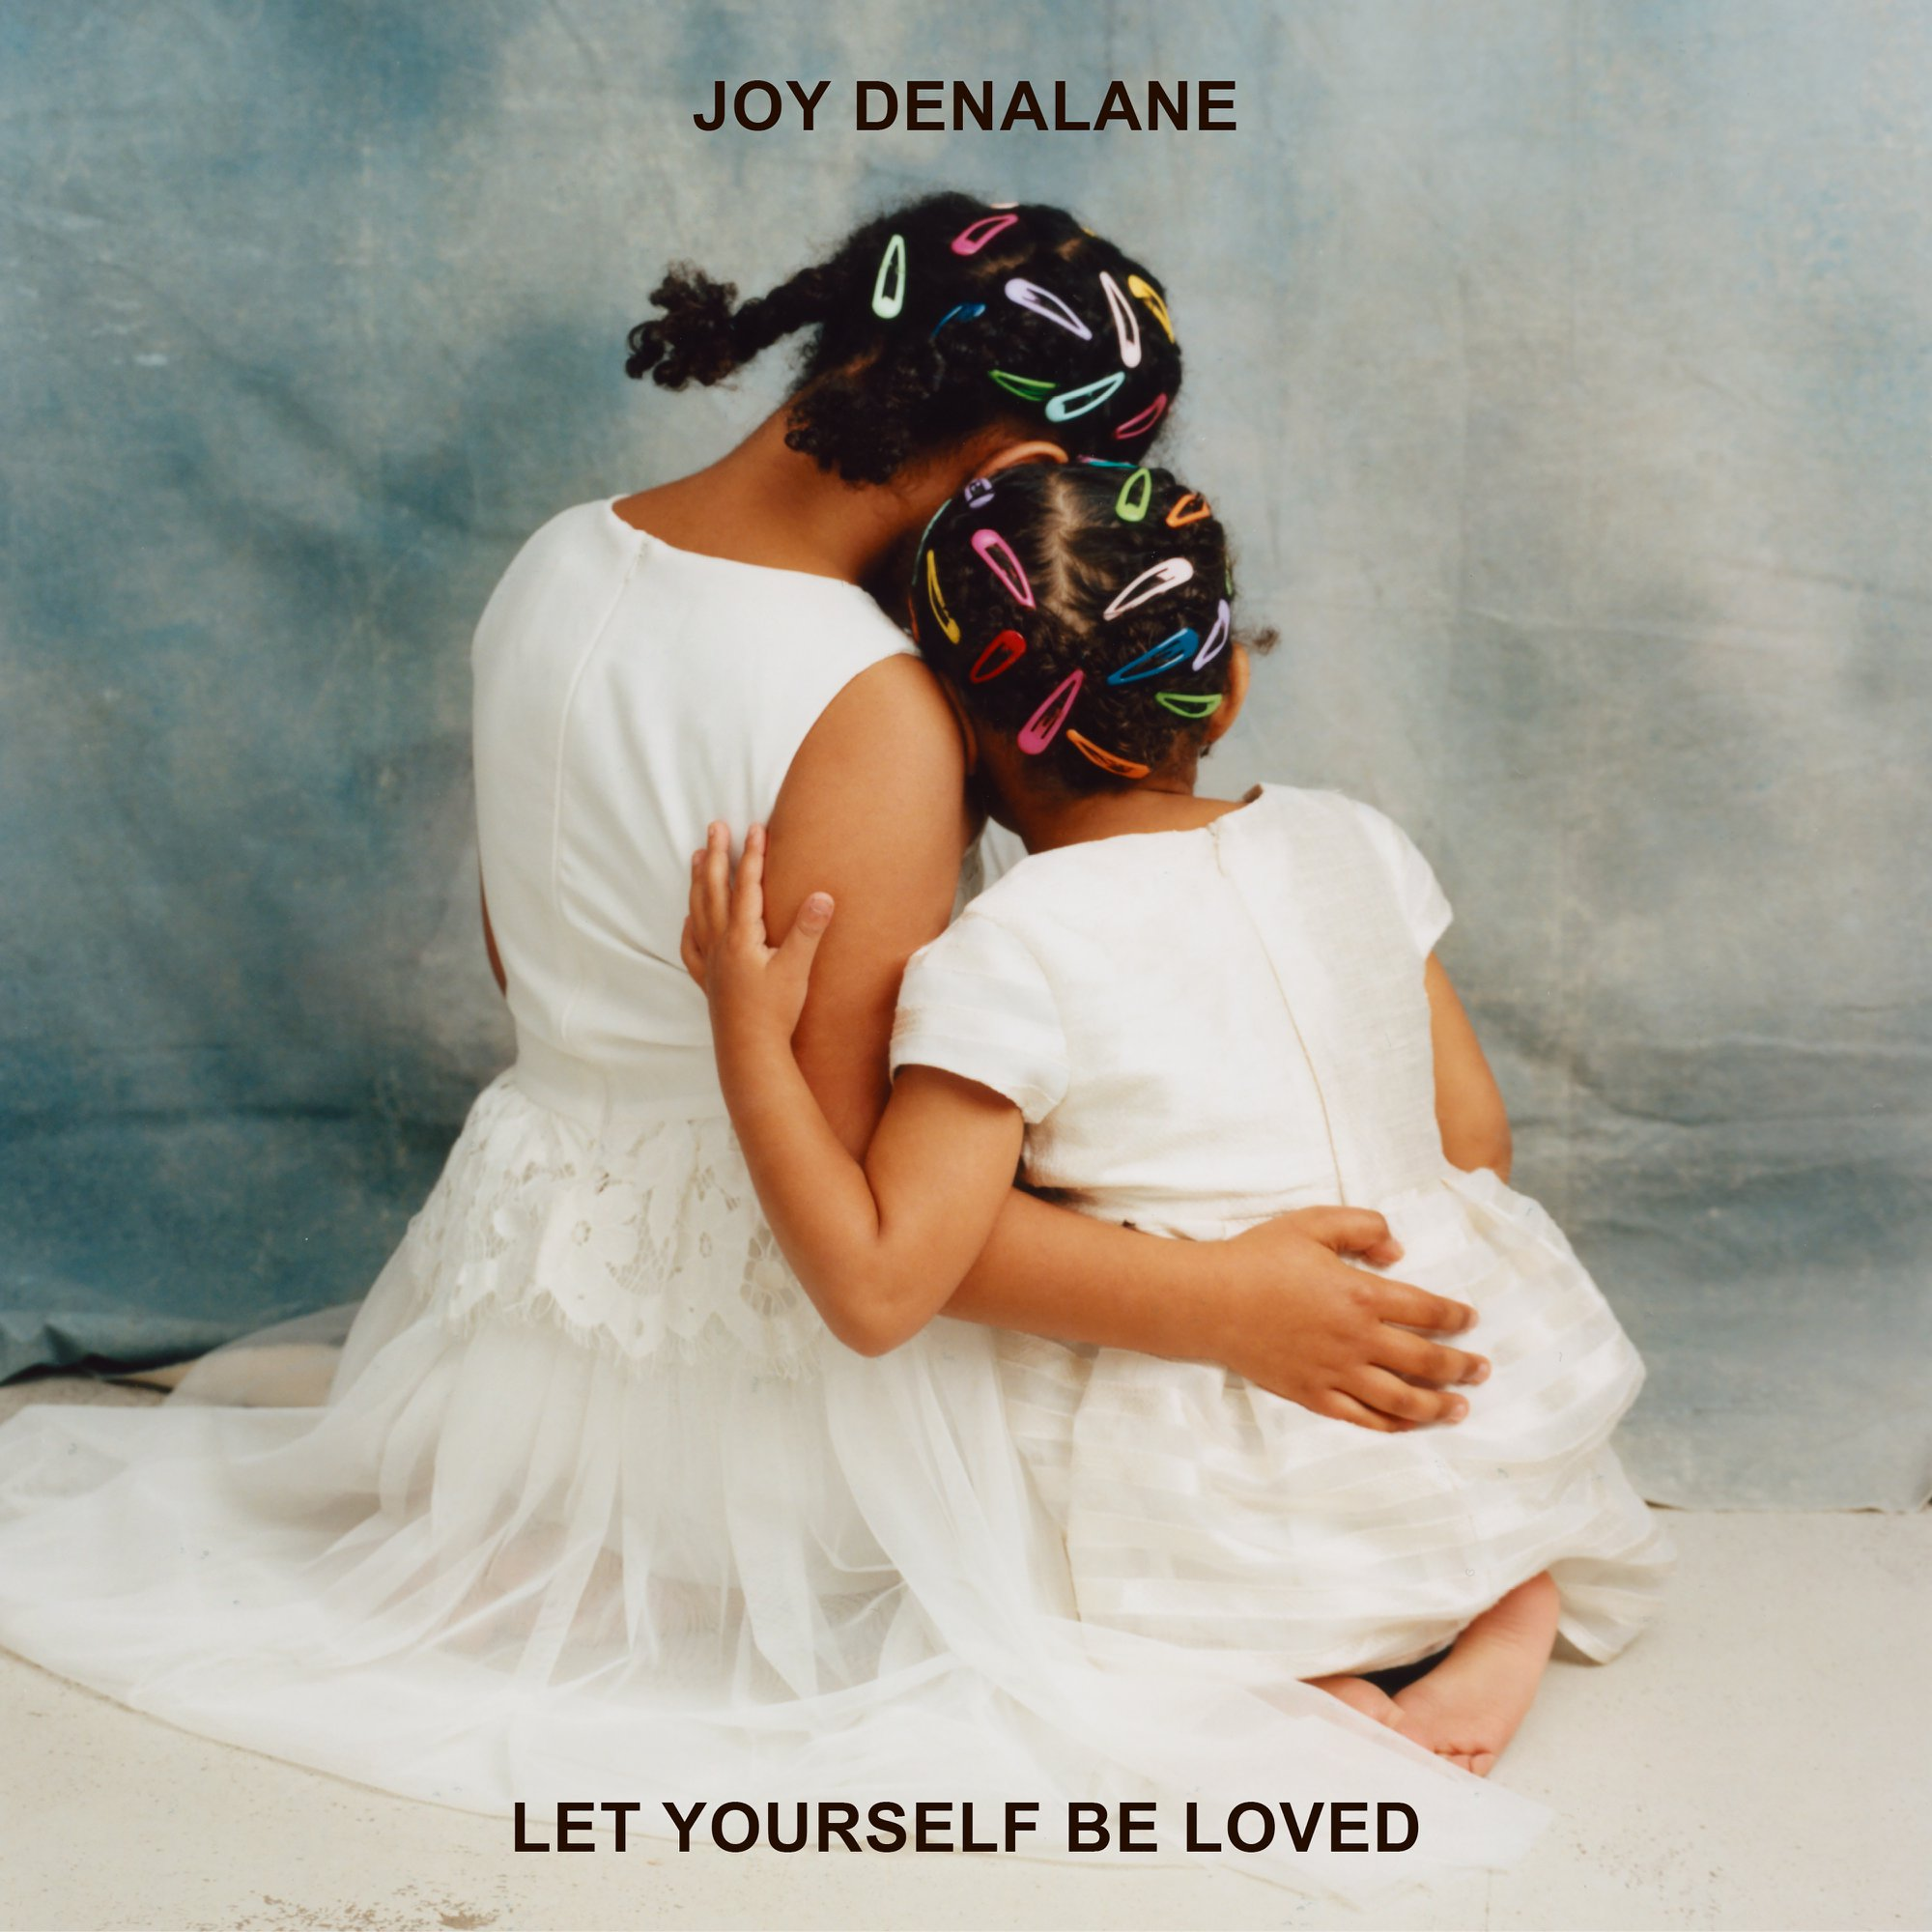 joy denalane let yourself be loved